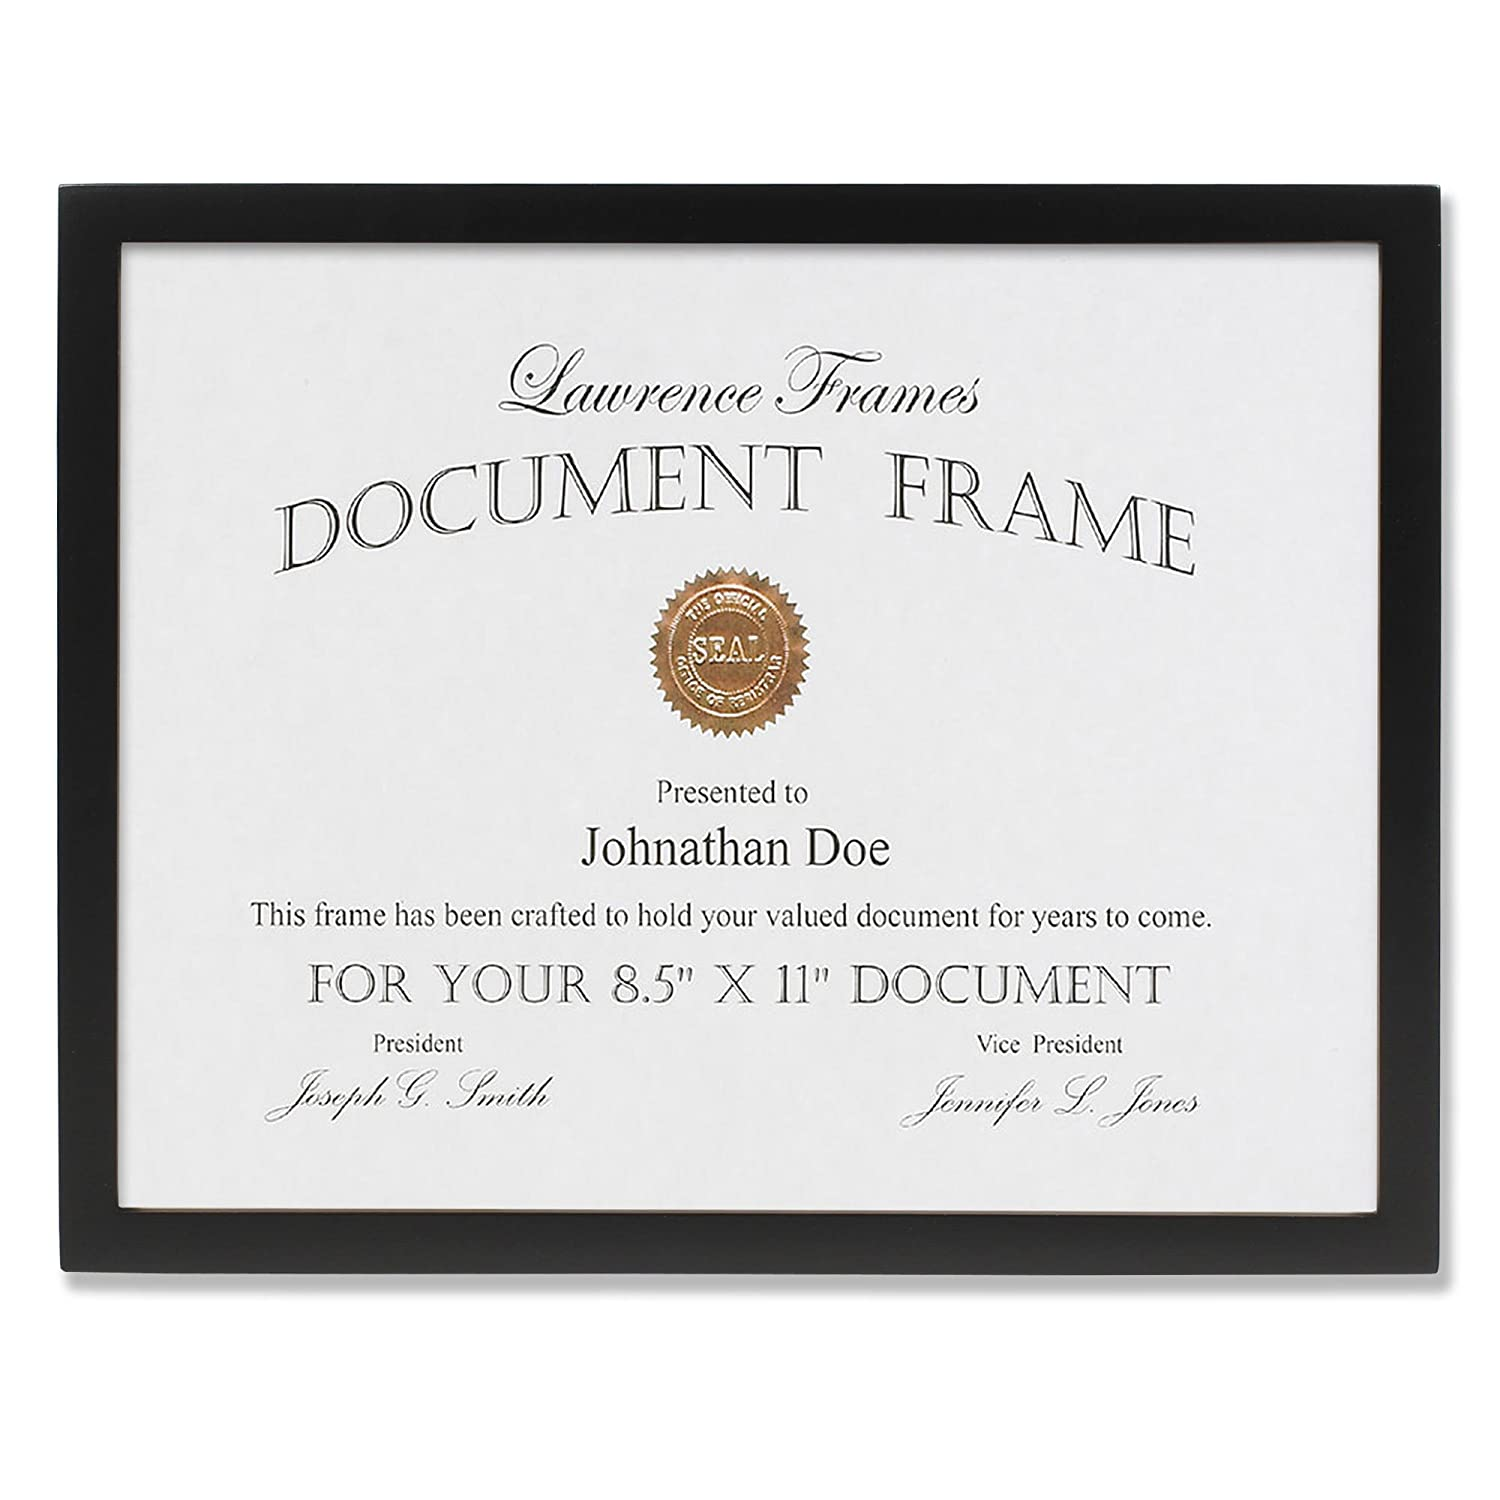 Lawrence Frames Black Wood Certificate Picture Frame, Gallery Collection, 8-1/2 by 11-Inch 755581